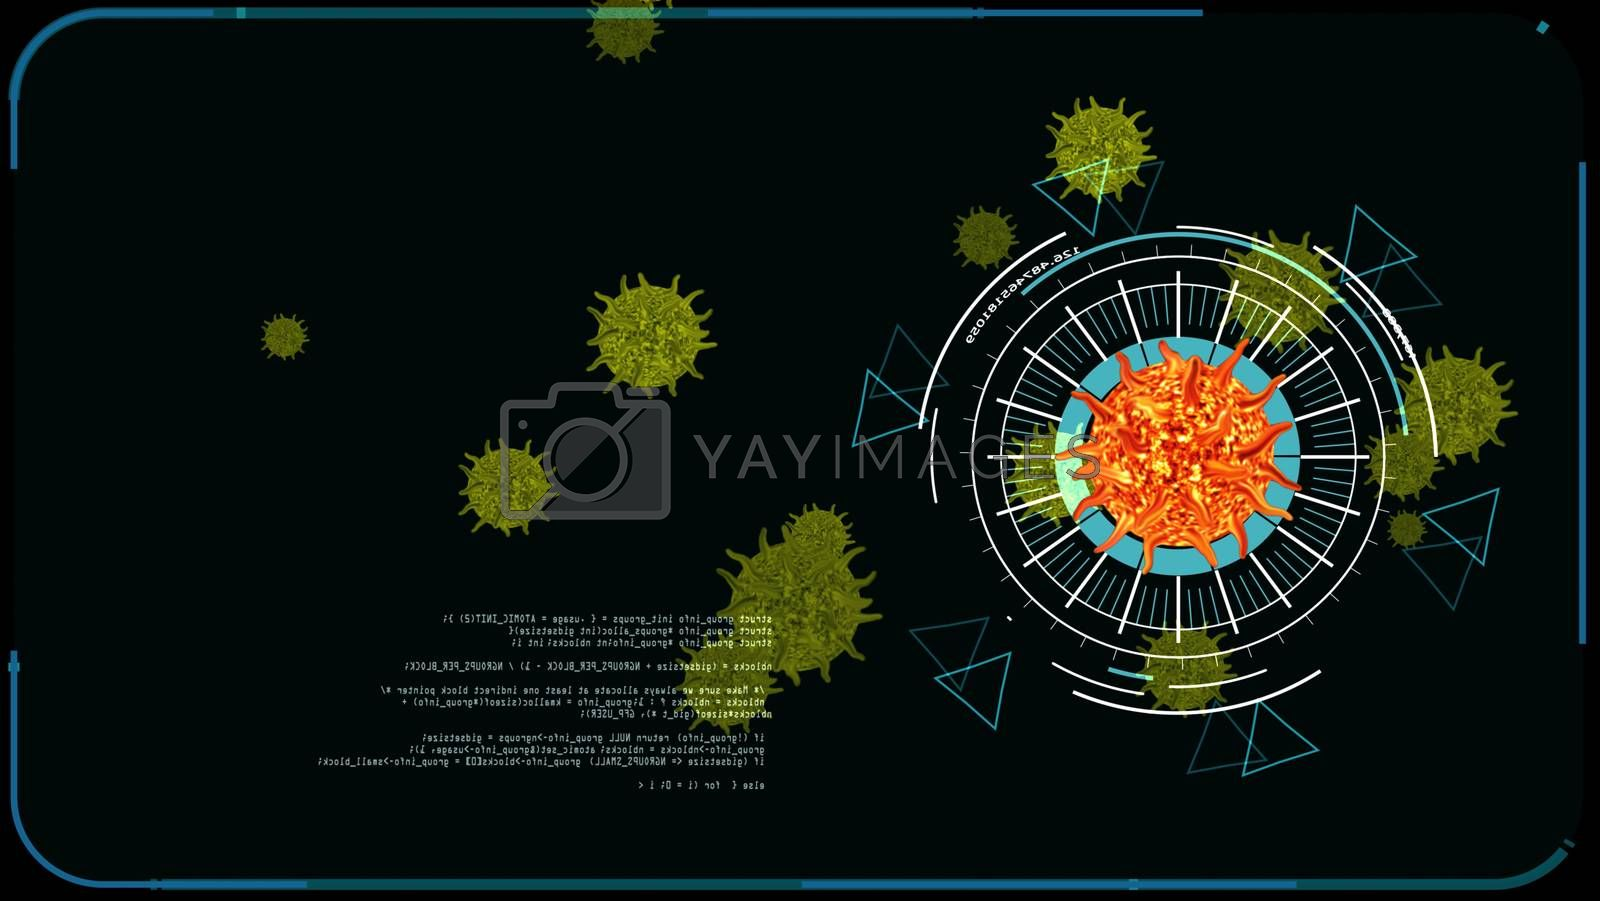 lava color virus covid 19 digital begin analysis to find vaccine and medicine and yellow another virus on monitor